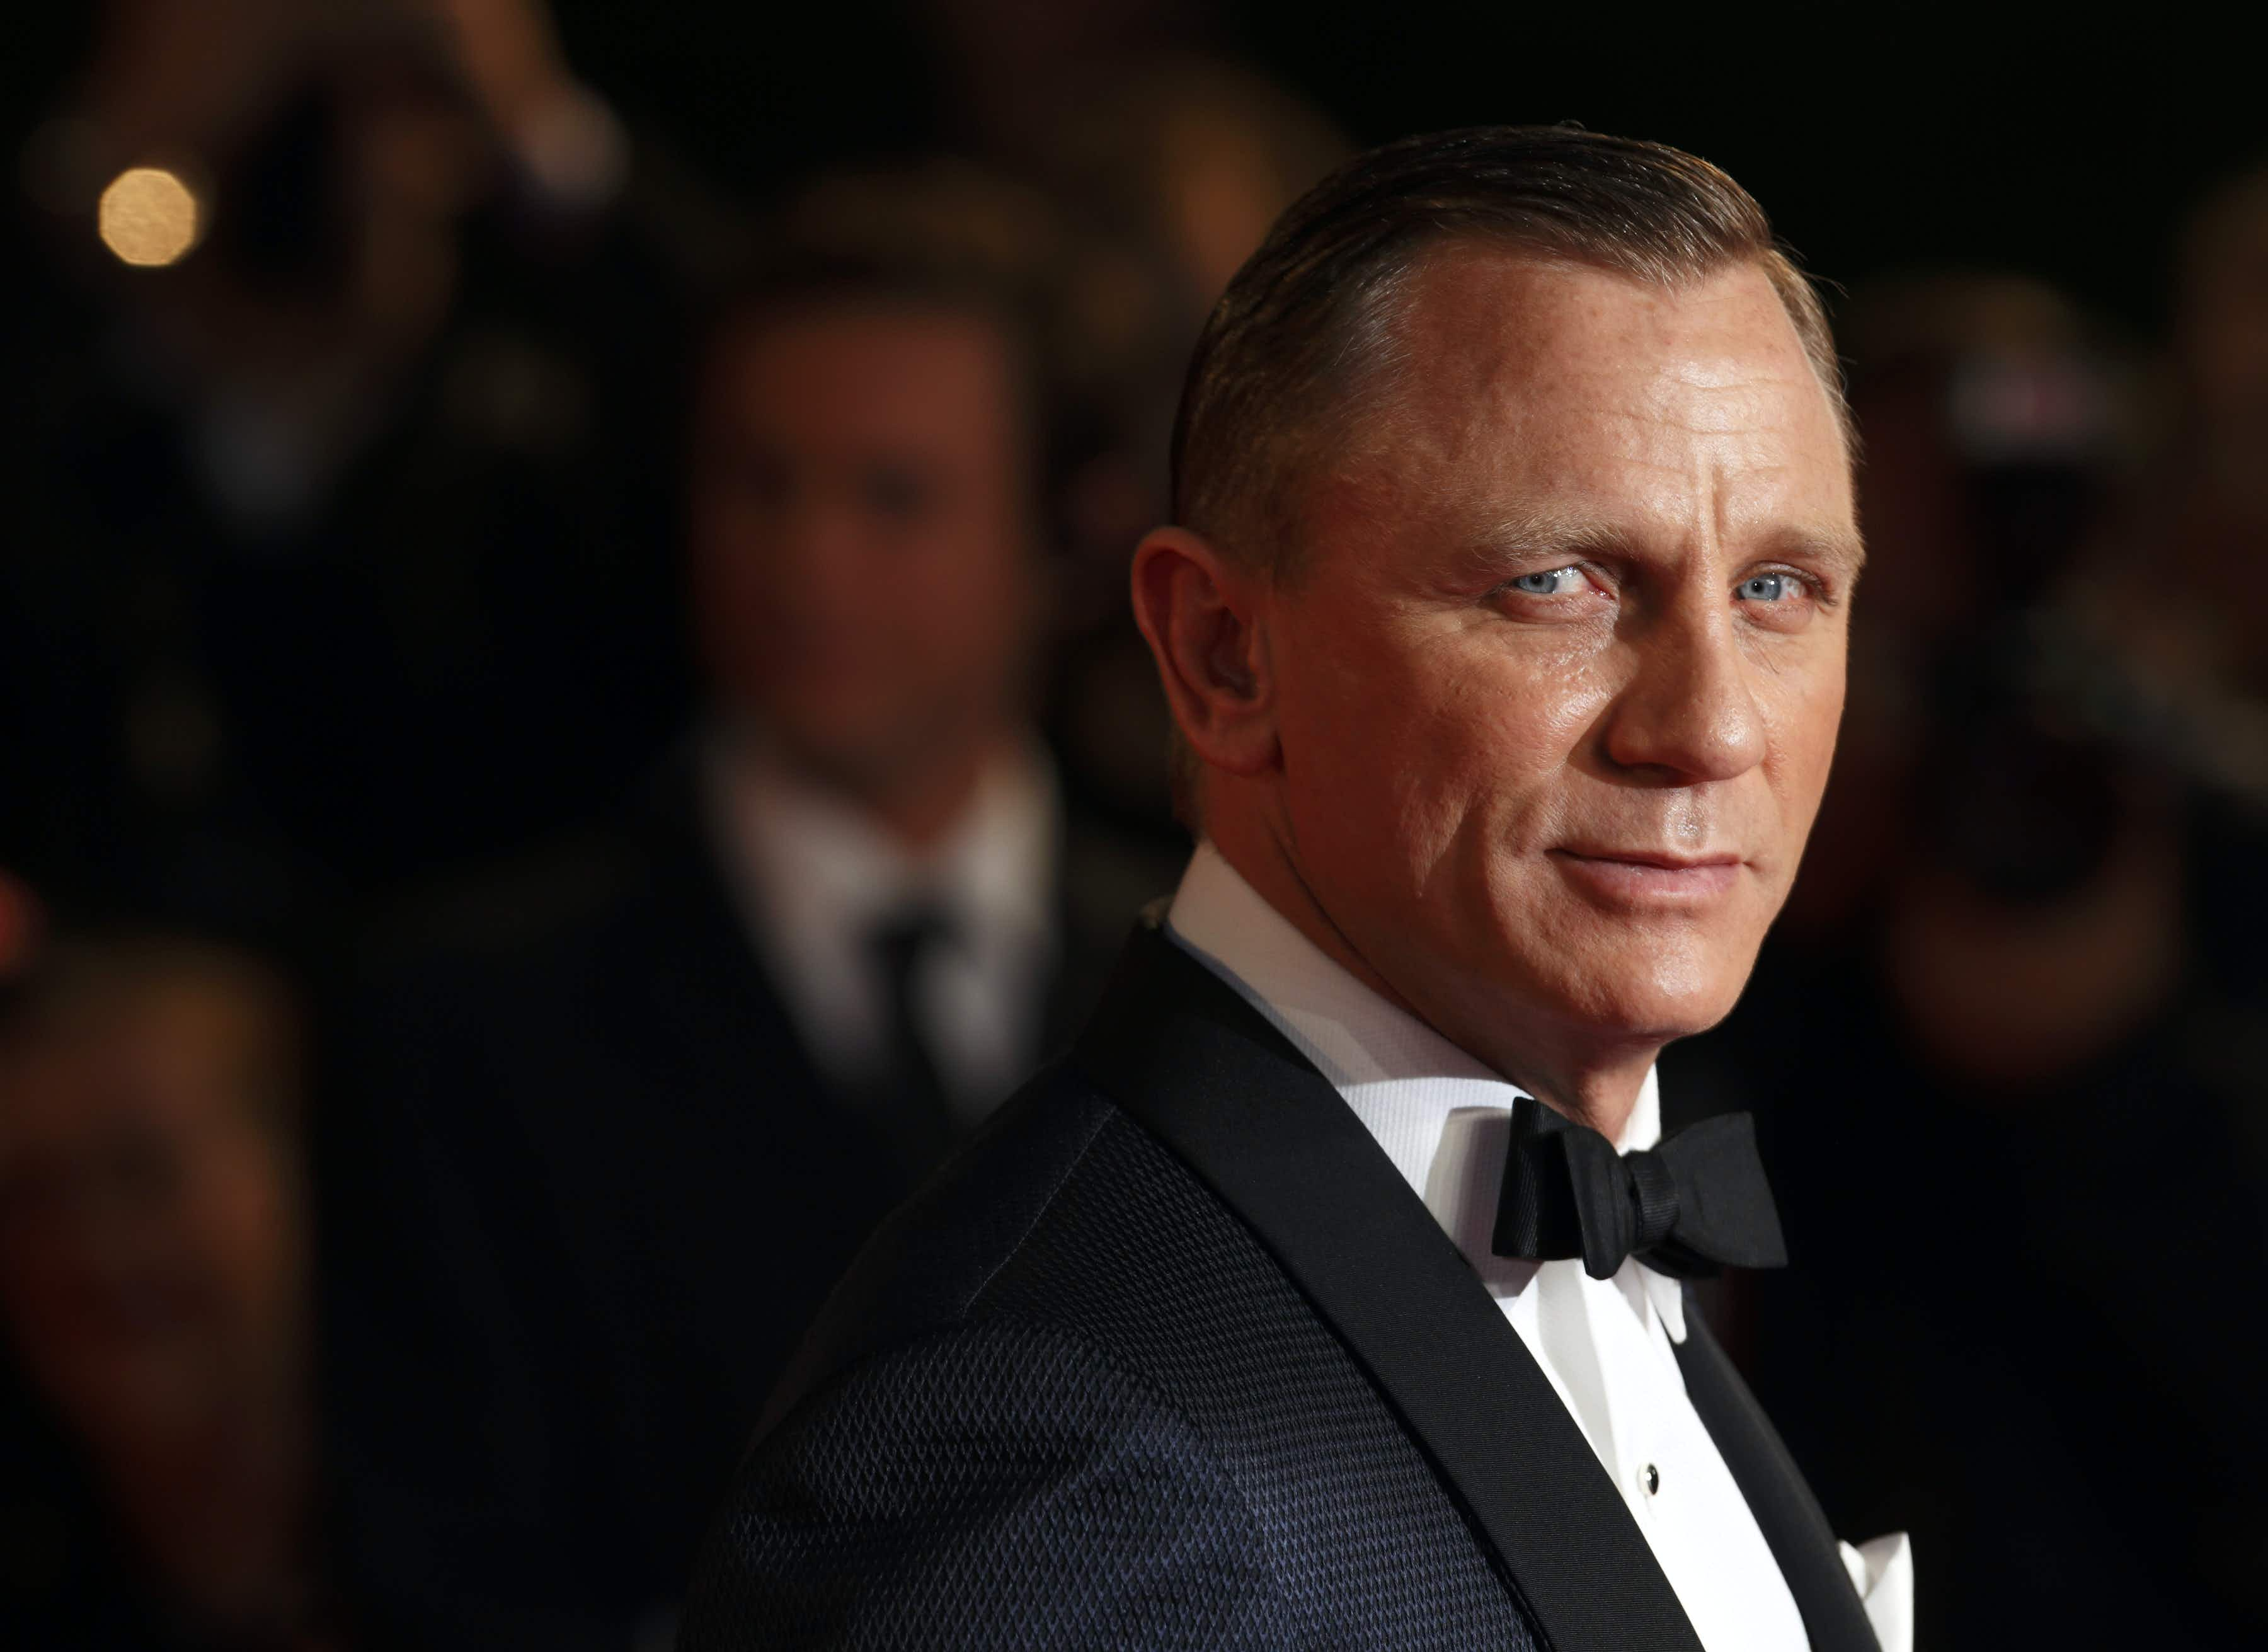 Where James Bond should go on his next mission